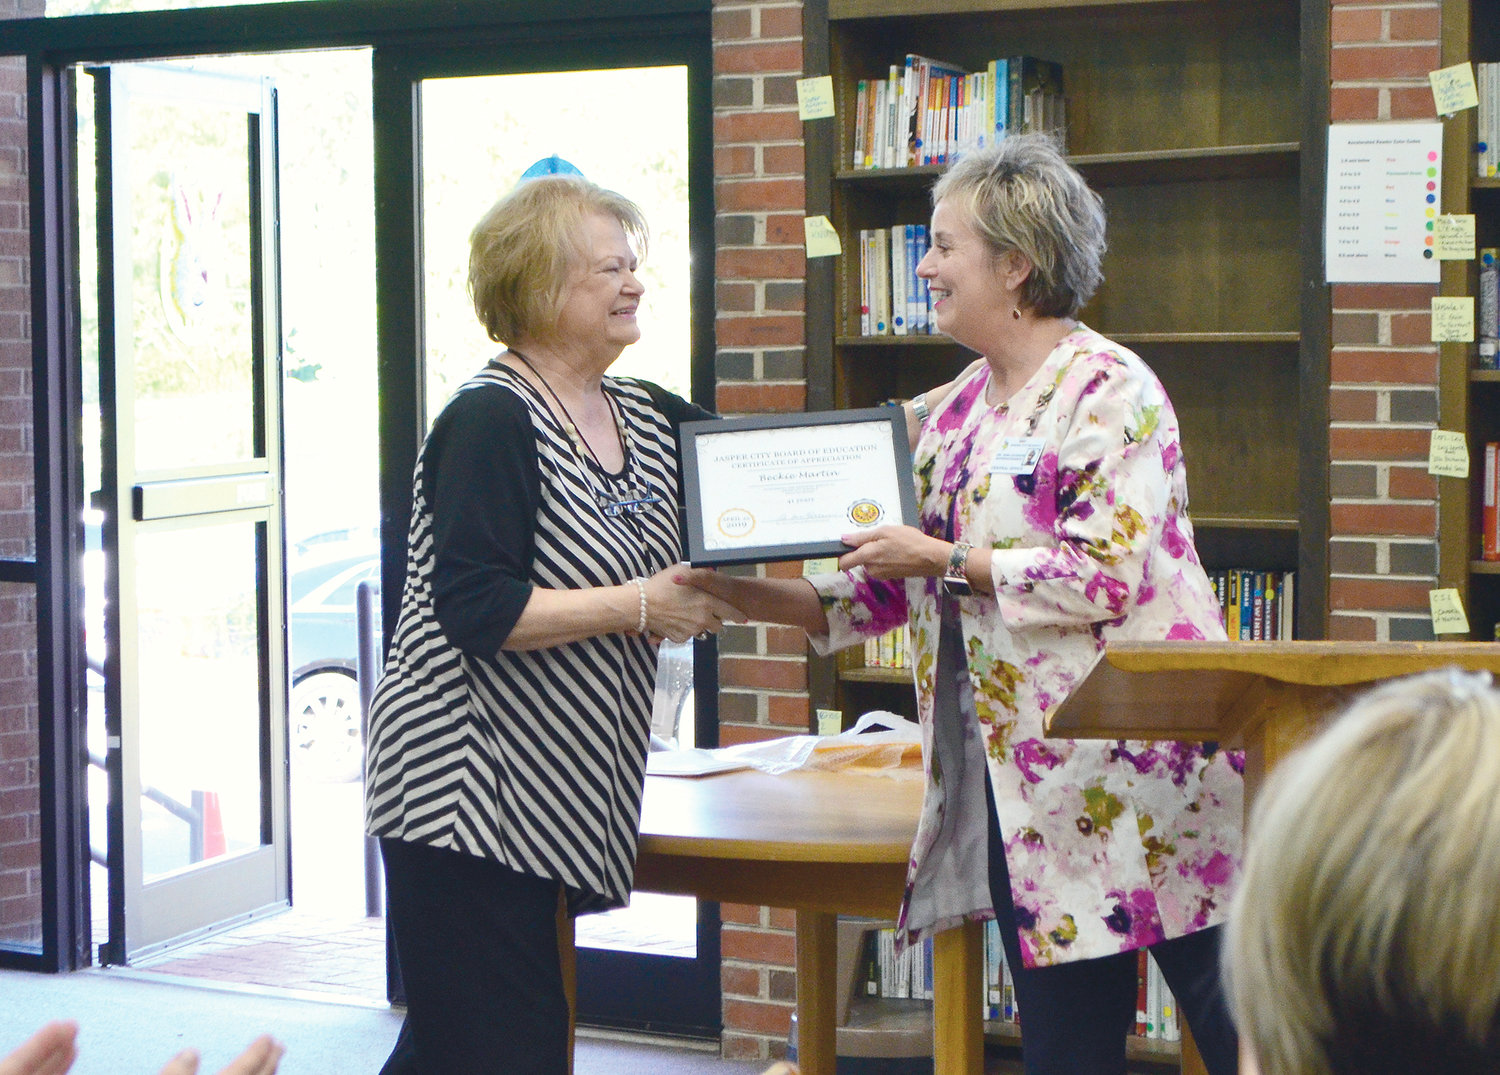 Jasper City Schools CNP Director Beckie Martin was recognized for 41 years of service in the CNP program.